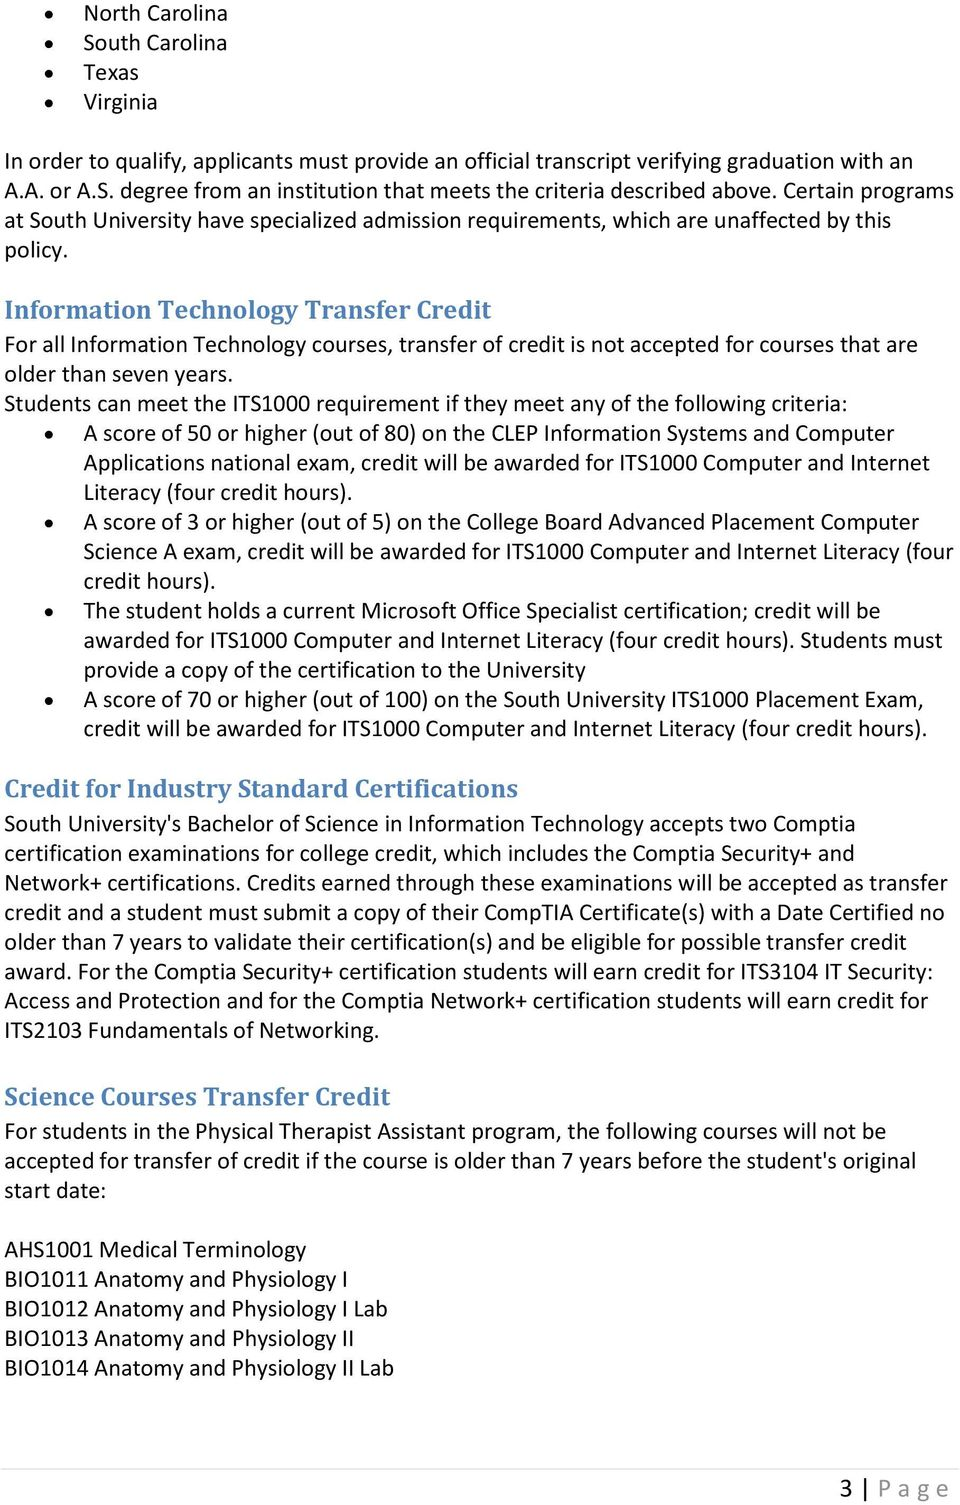 Information Technology Transfer Credit For all Information Technology courses, transfer of credit is not accepted for courses that are older than seven years.